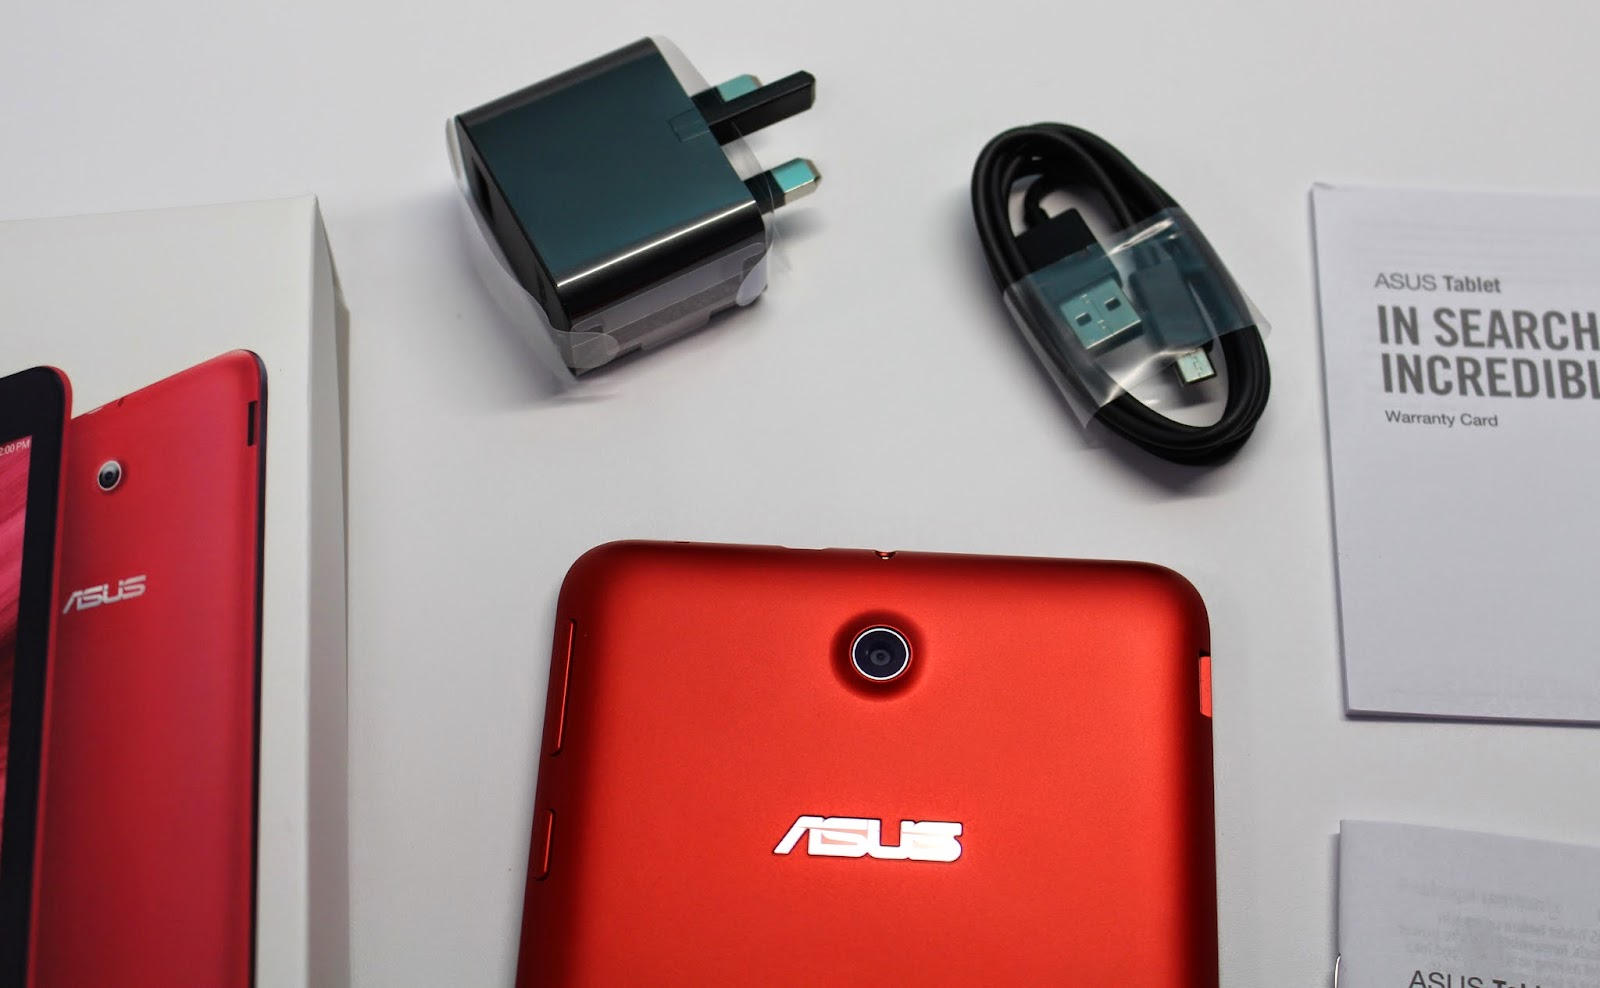 Asus-Me-Pad-7-Memo-ME176C-Review-Technology-Blog-Bootyfurl